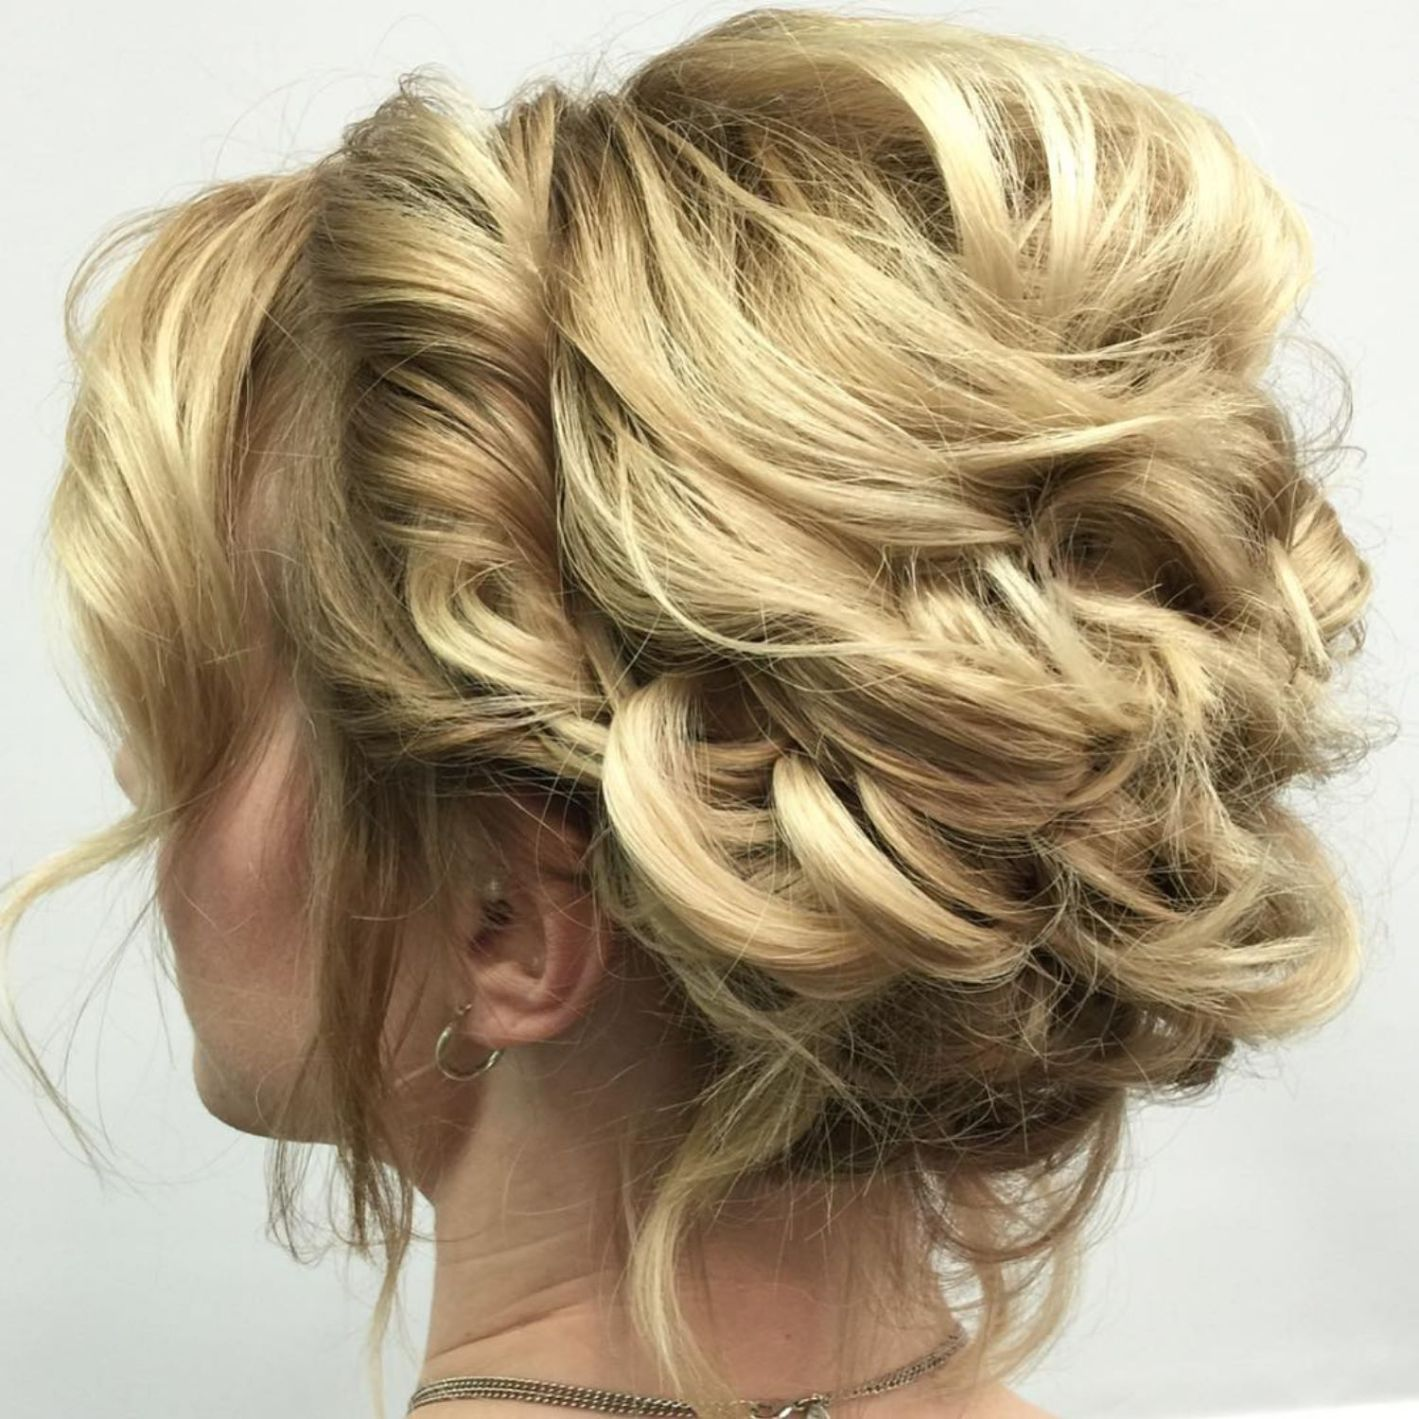 60 Updos For Short Hair Your Creative Short Hair Inspiration In